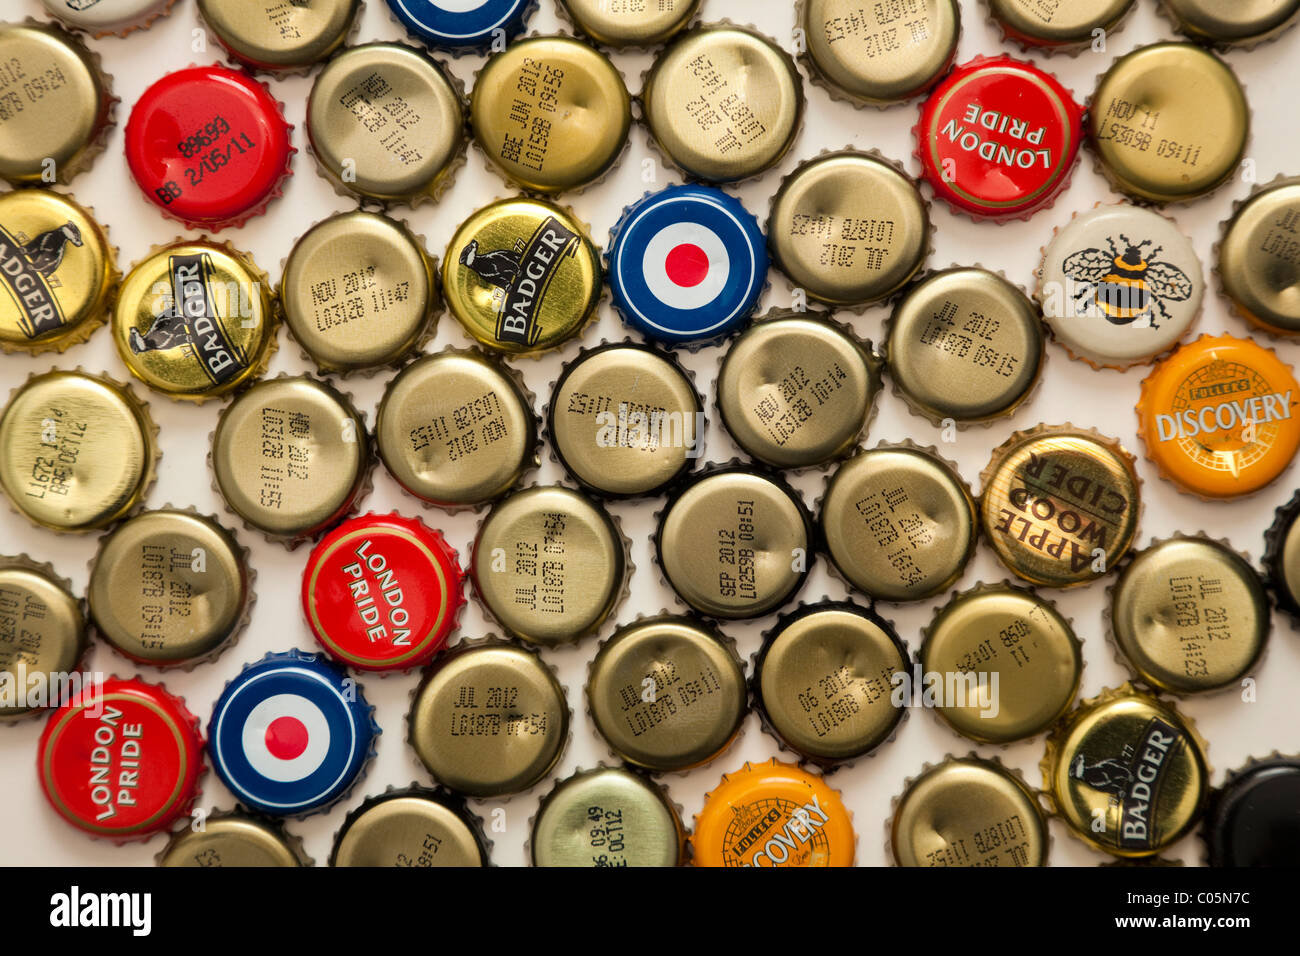 Crown beer bottle caps, some printed with brand names others